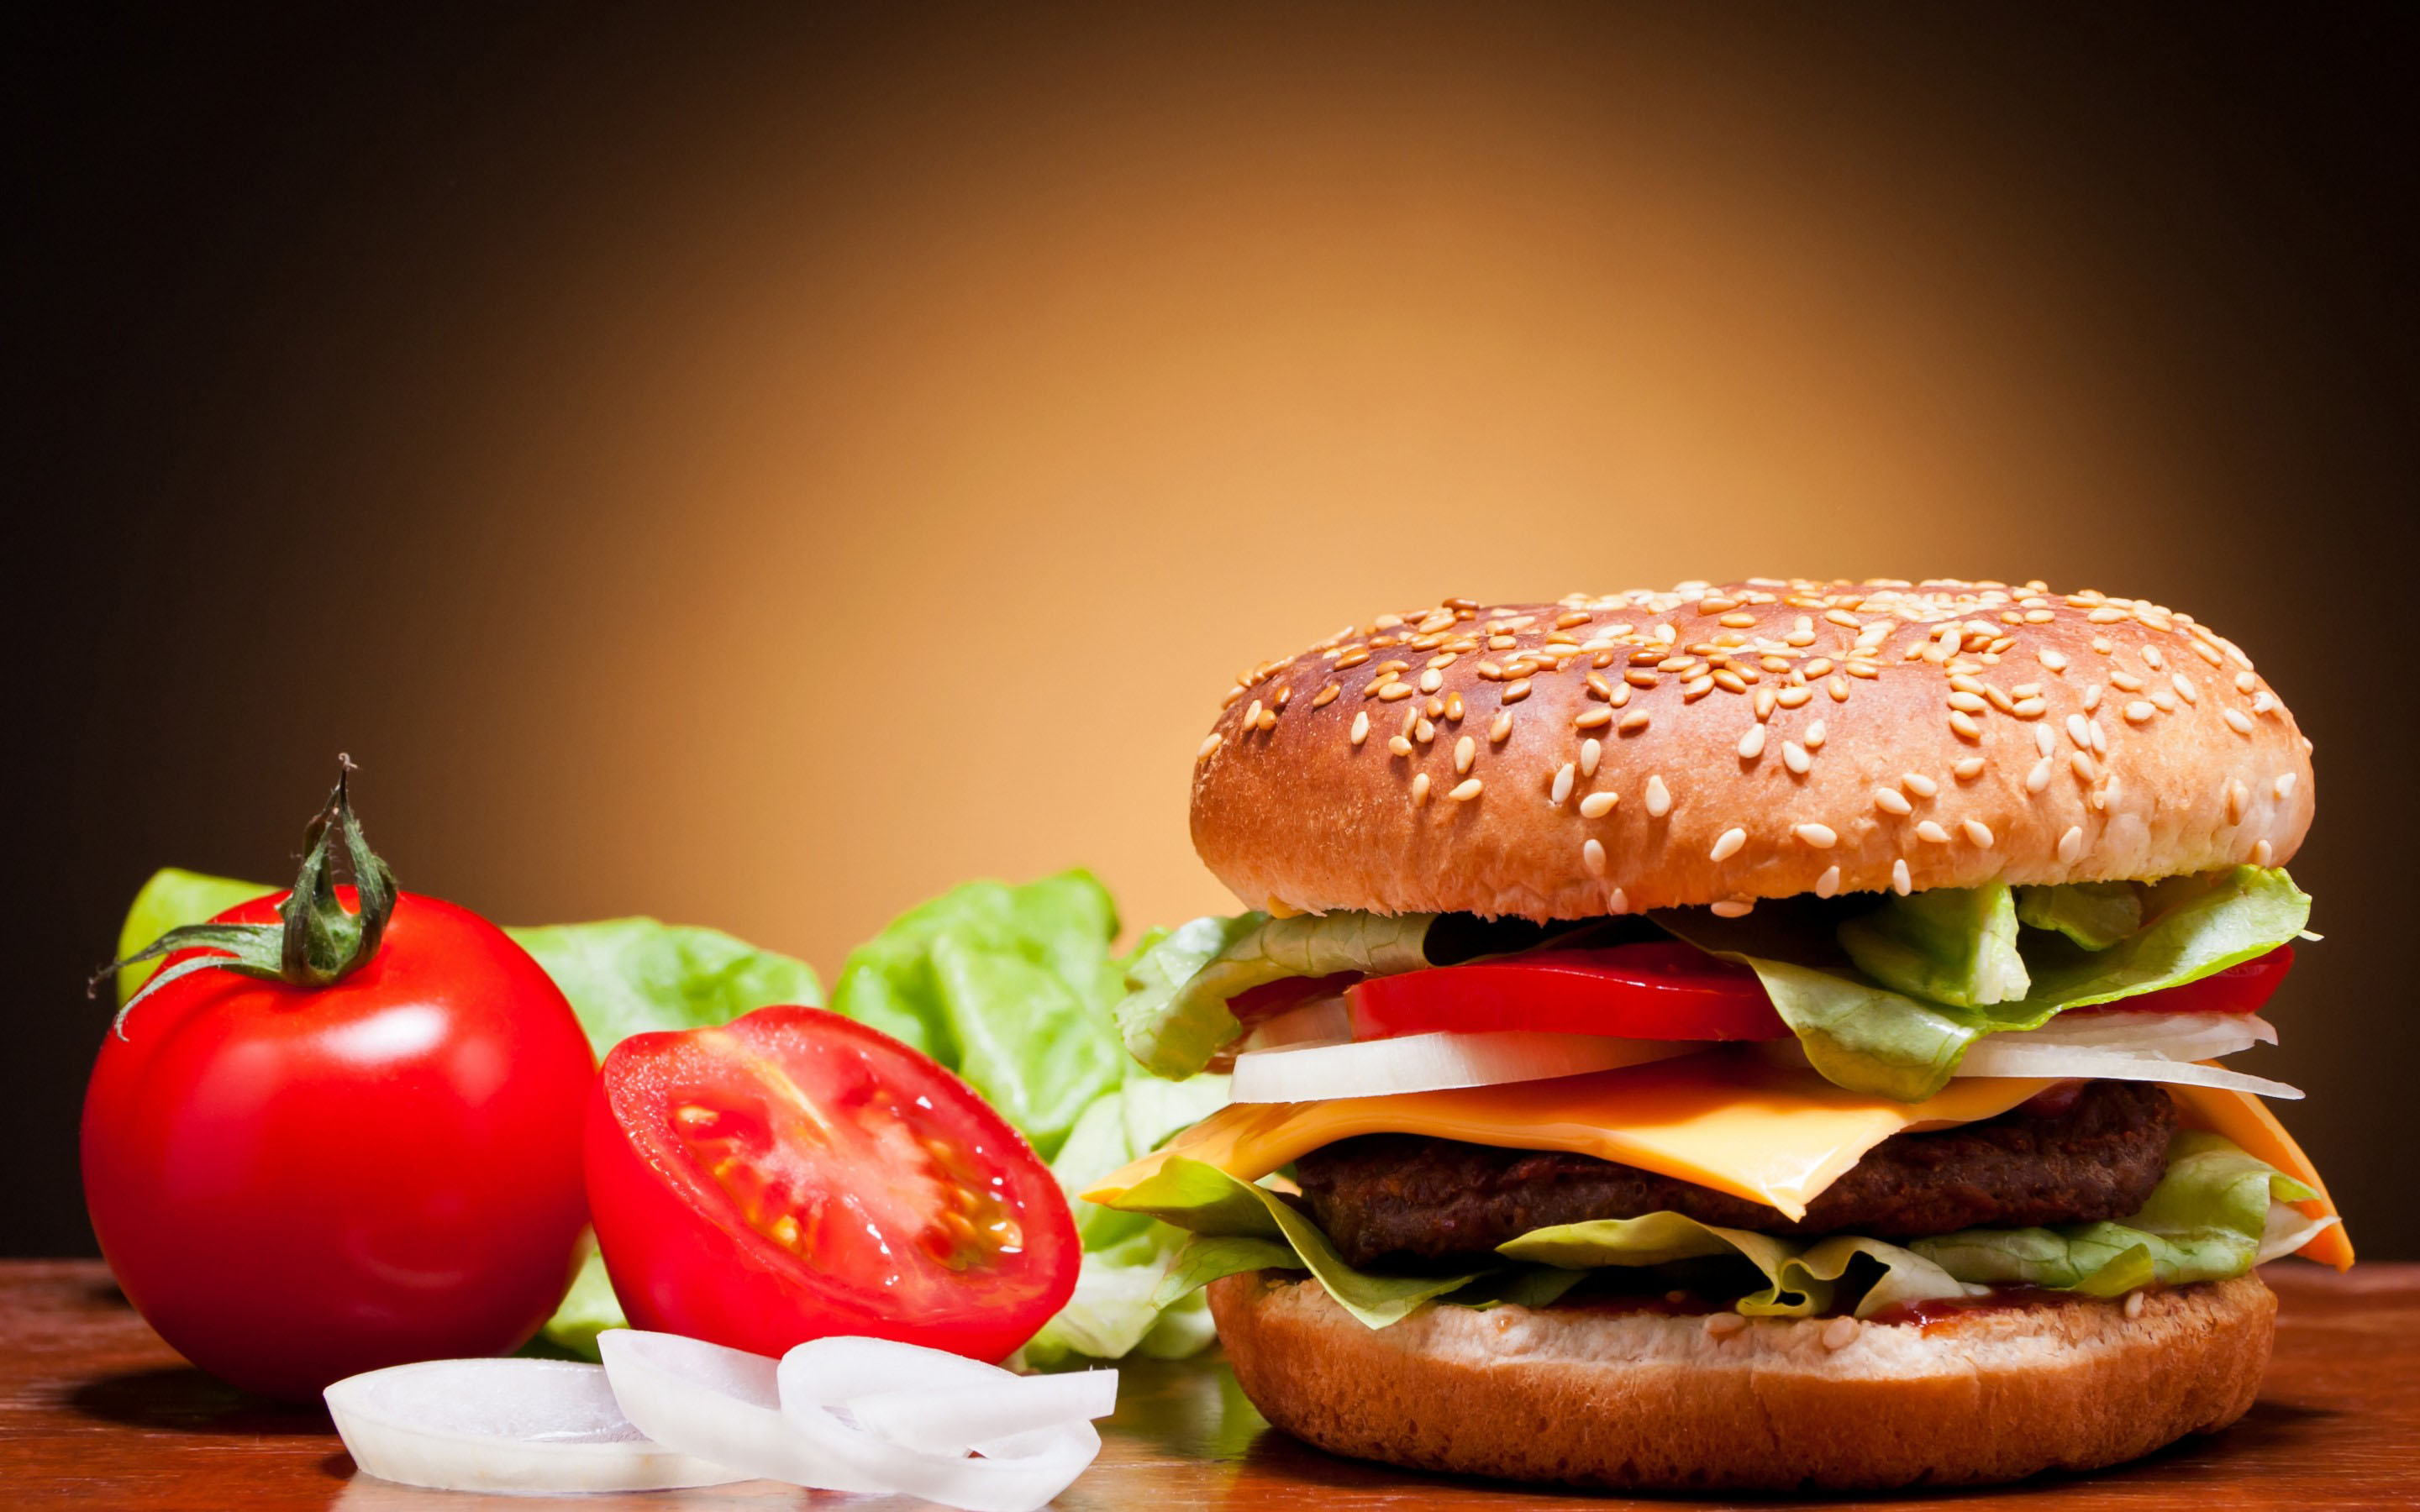 High Quality Hamburger Wallpaper | Full HD Pictures